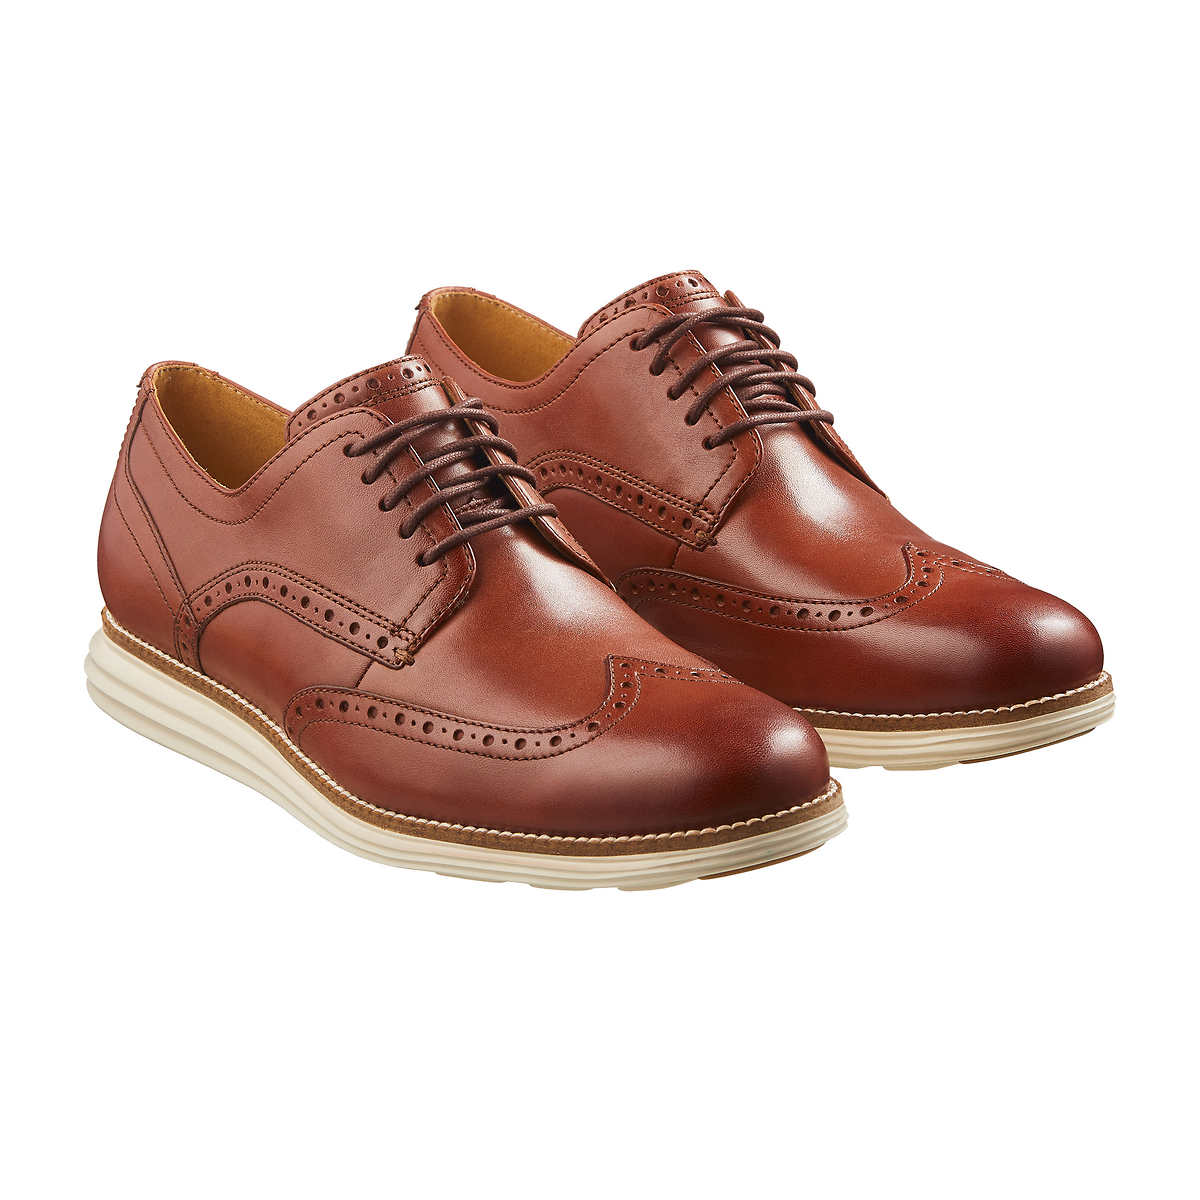 c3dfabfd601ca Cole Haan Men s Original Grand Wingtip Oxford Shoe. brown 1 brown 1